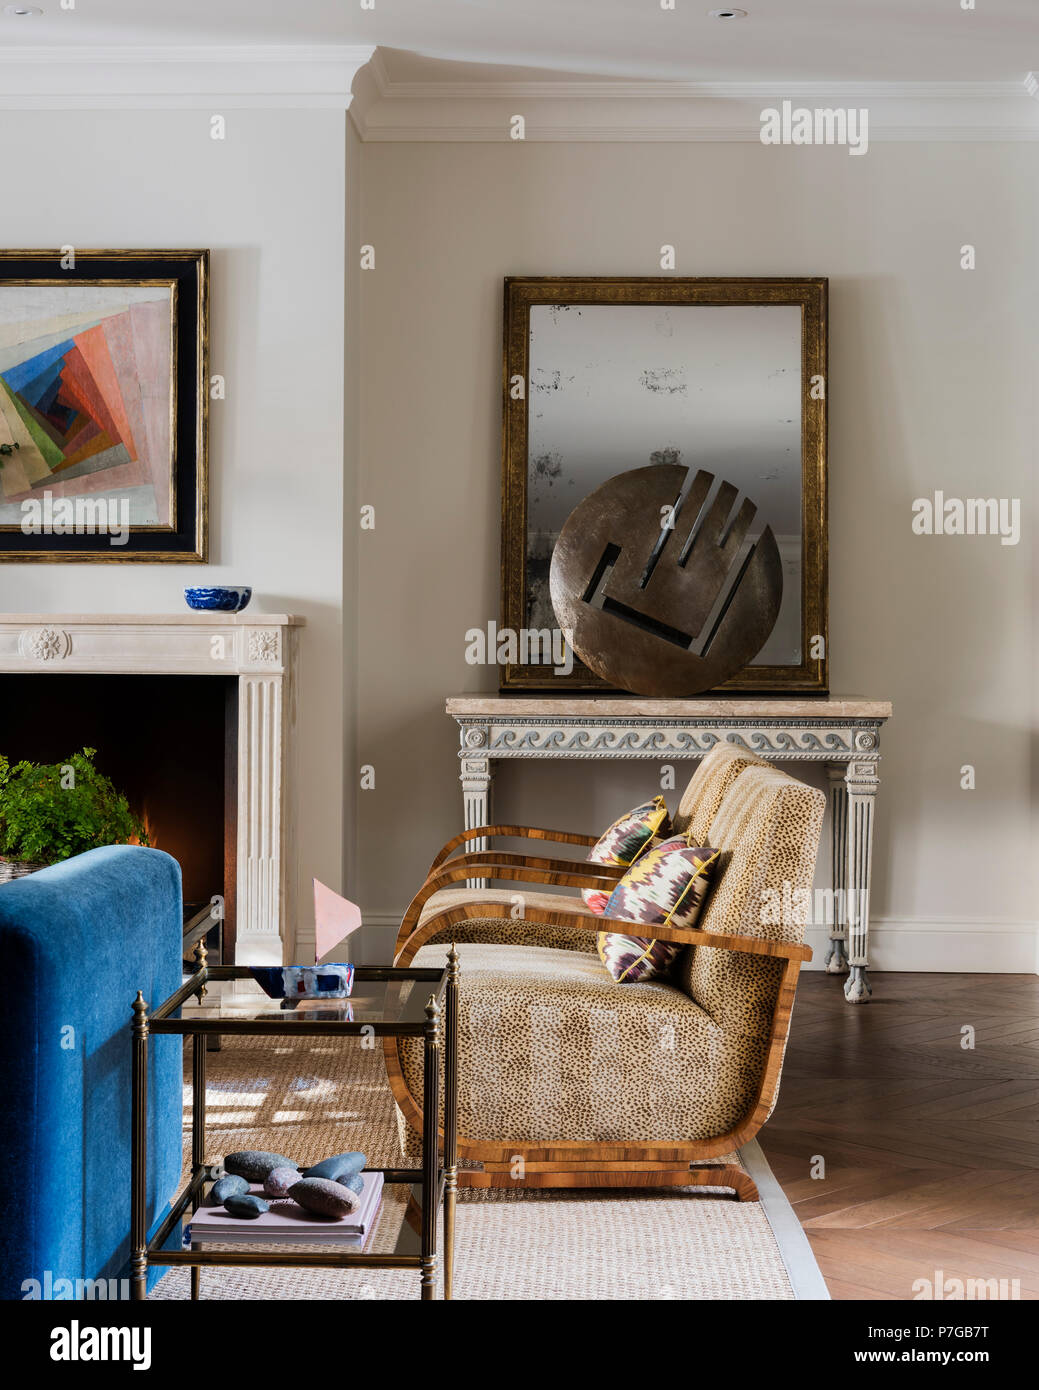 Modern armchairs in living room Stock Photo: 211187084 - Alamy